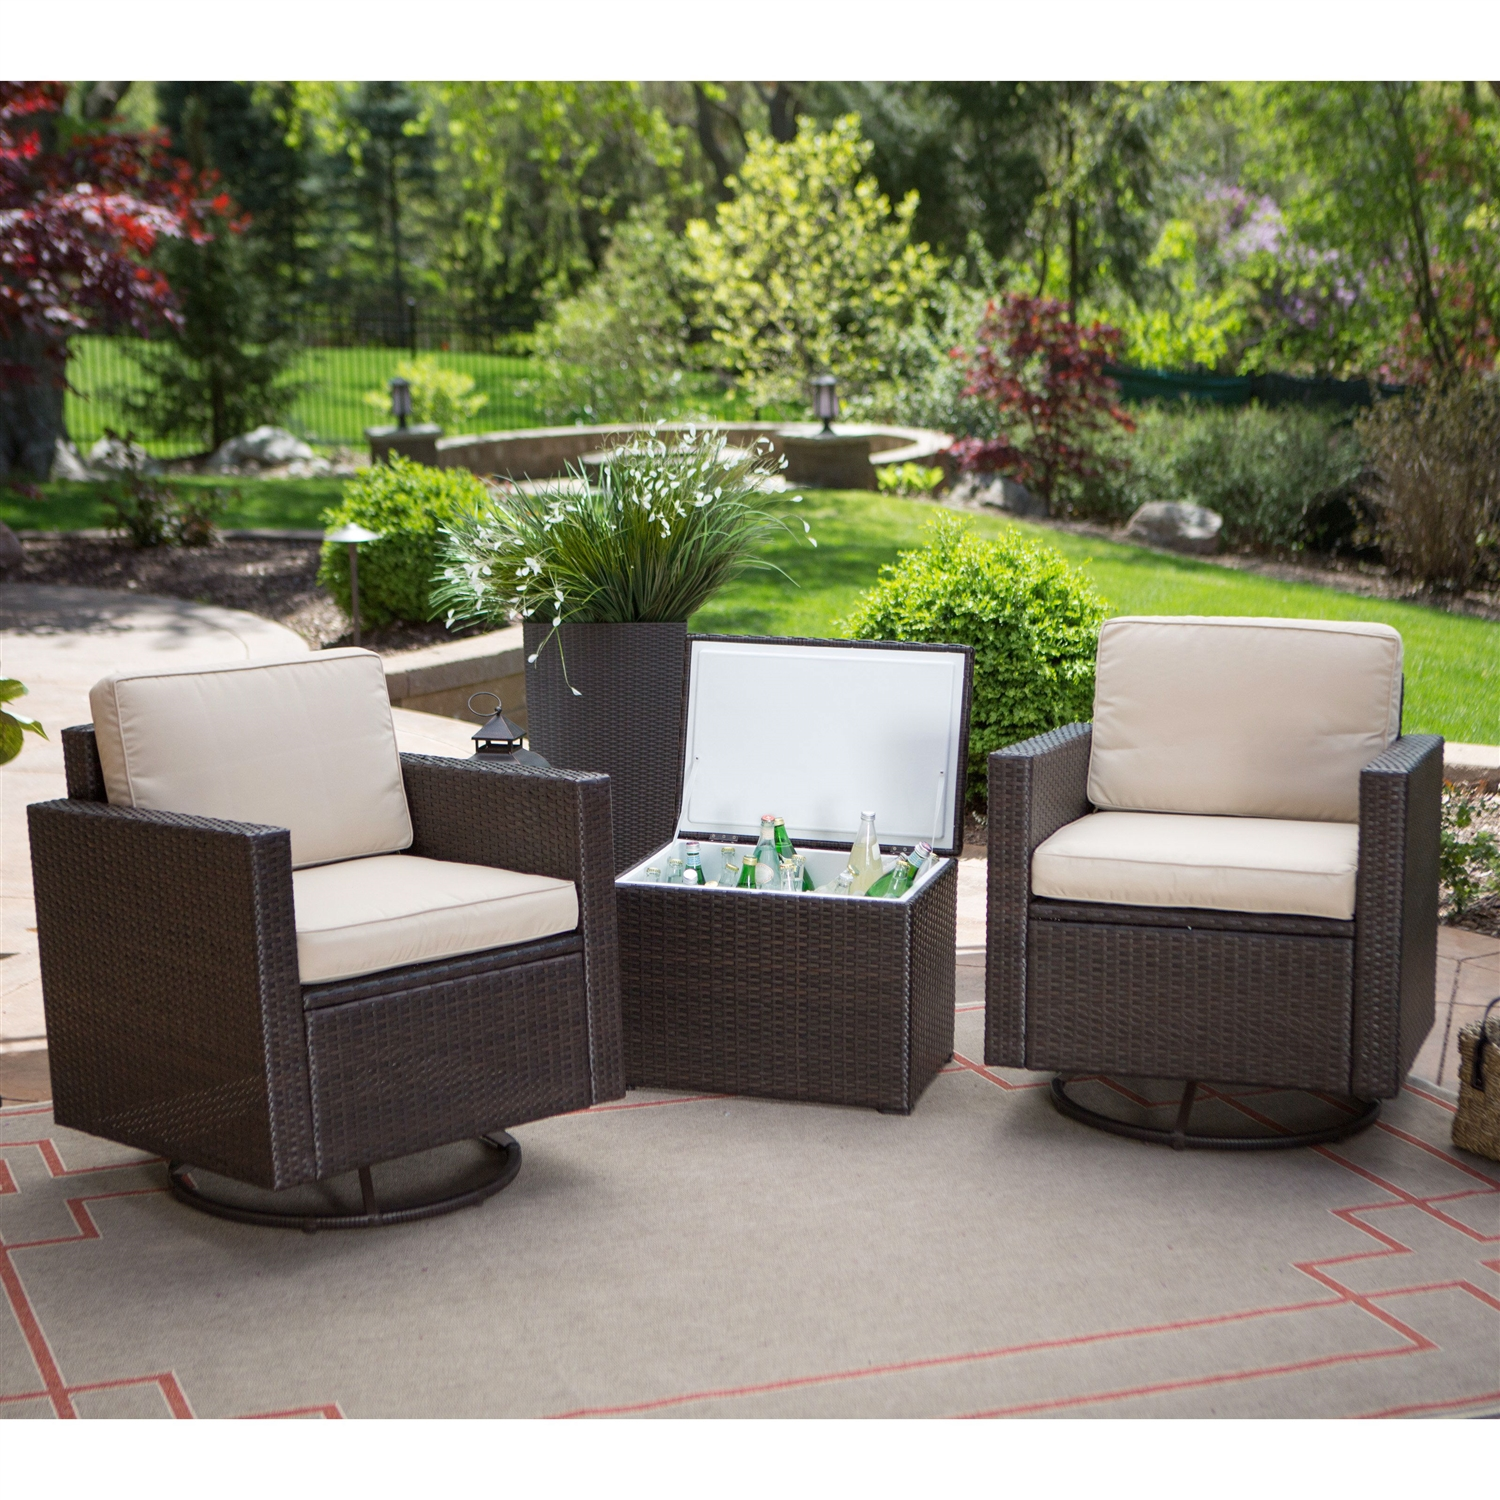 outdoor wicker resin piece patio furniture set with chairs and side table cooler storage brown end tables free patterns for quilted runners toppers glass top corner round acrylic